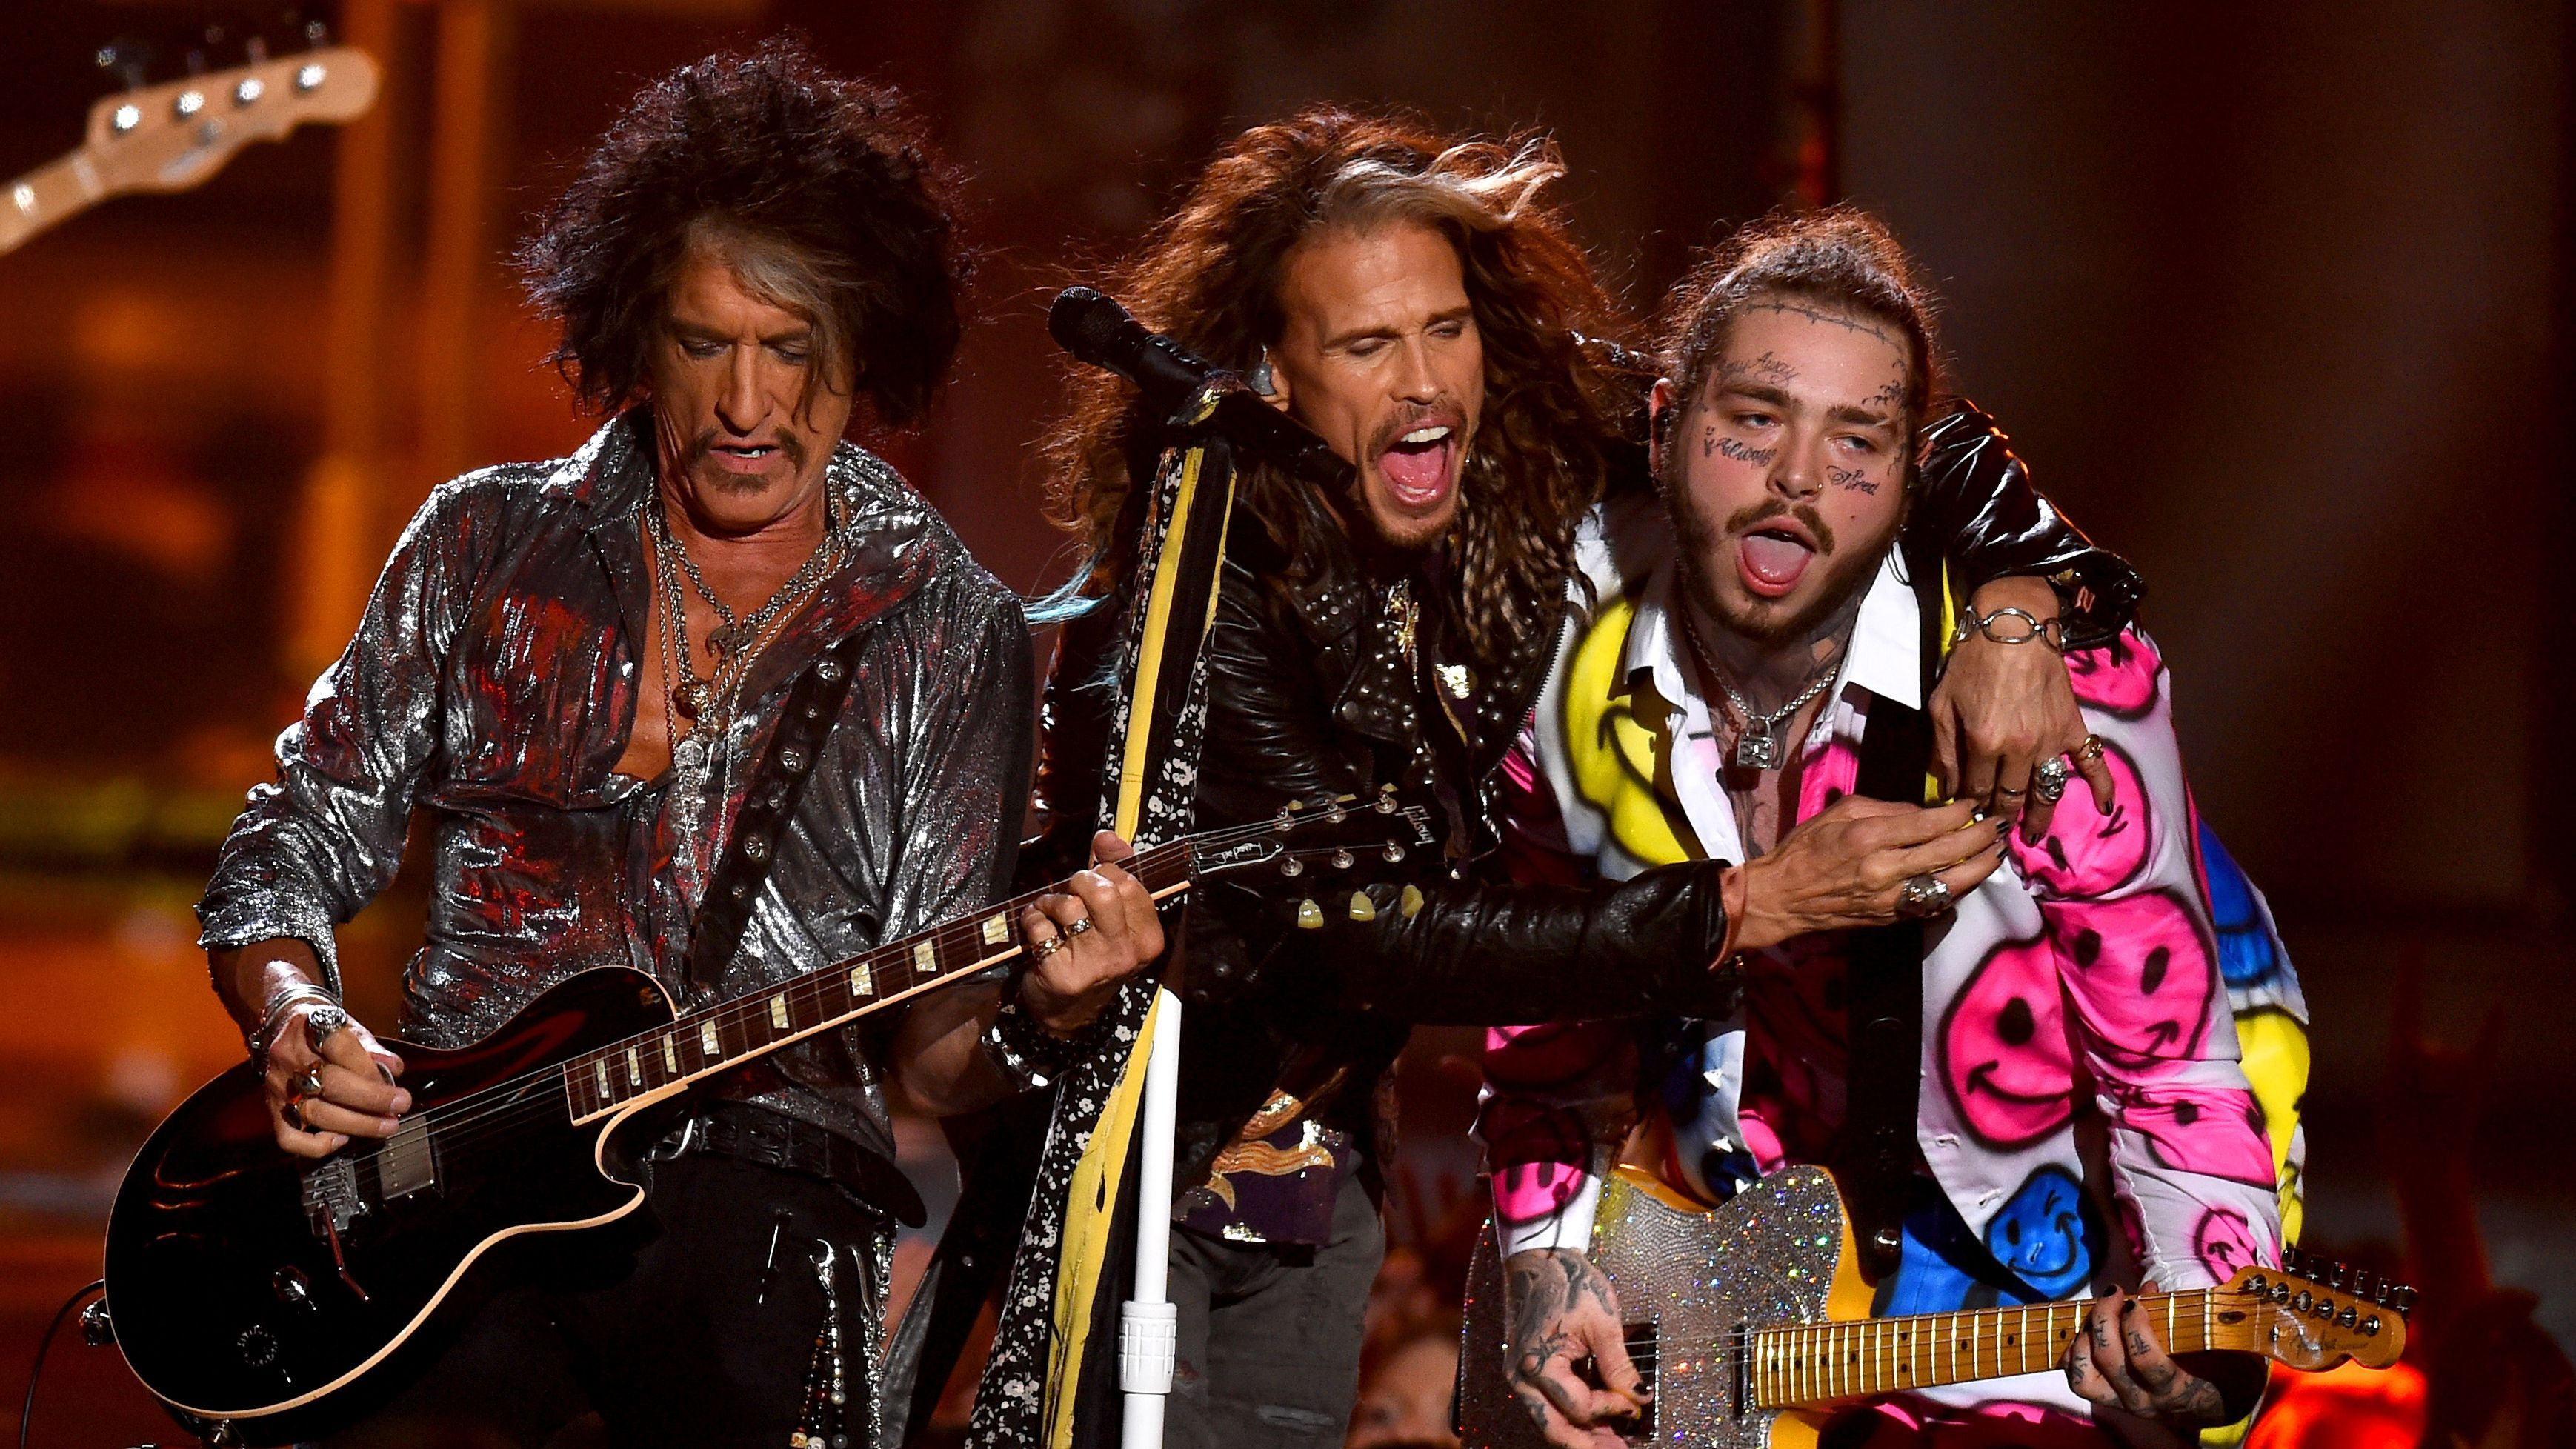 Post Malone And 21 Savage Dream On With Aerosmith Mtv